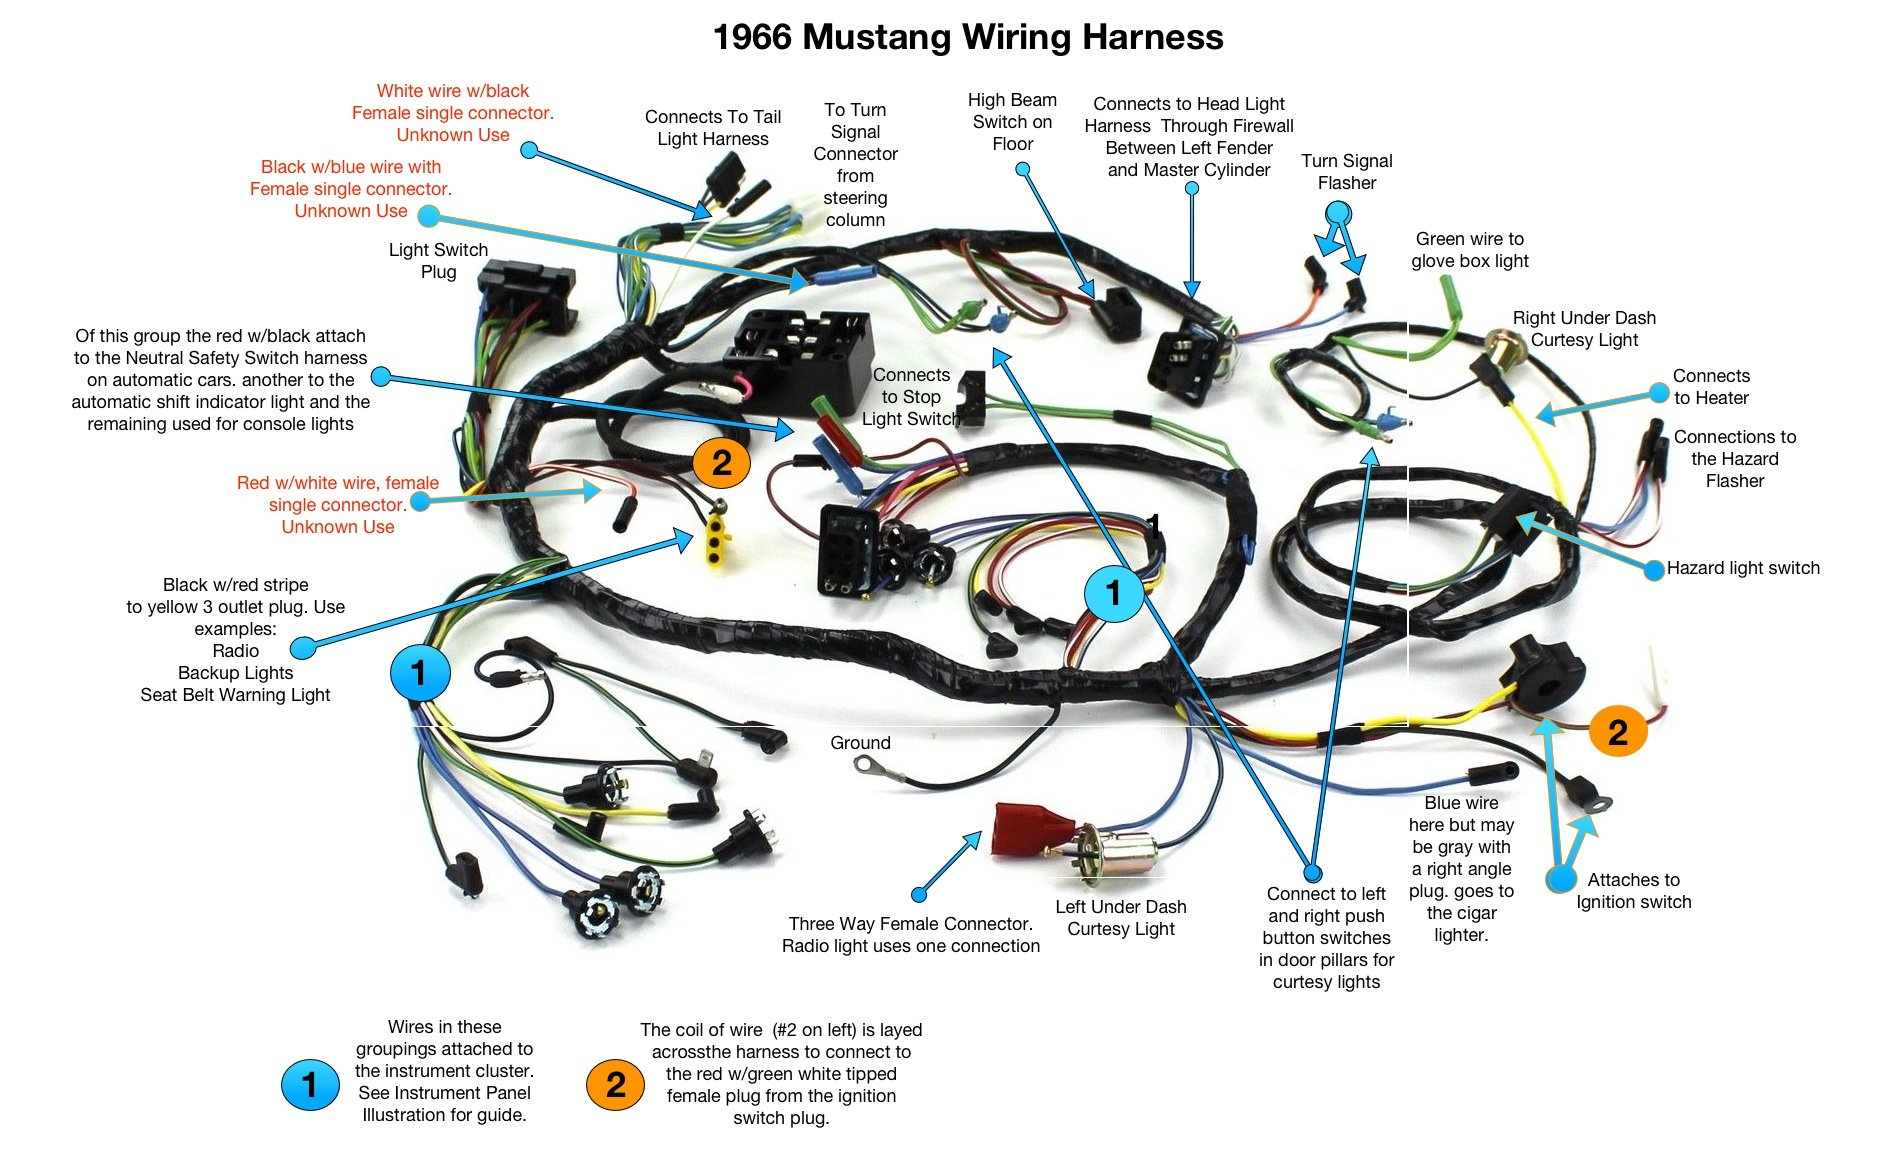 507585d1458686767 66 wiring harness diagram 66 mustang wiring harness harness wiring diagram jeep wrangler wiring harness diagram \u2022 free  at bayanpartner.co